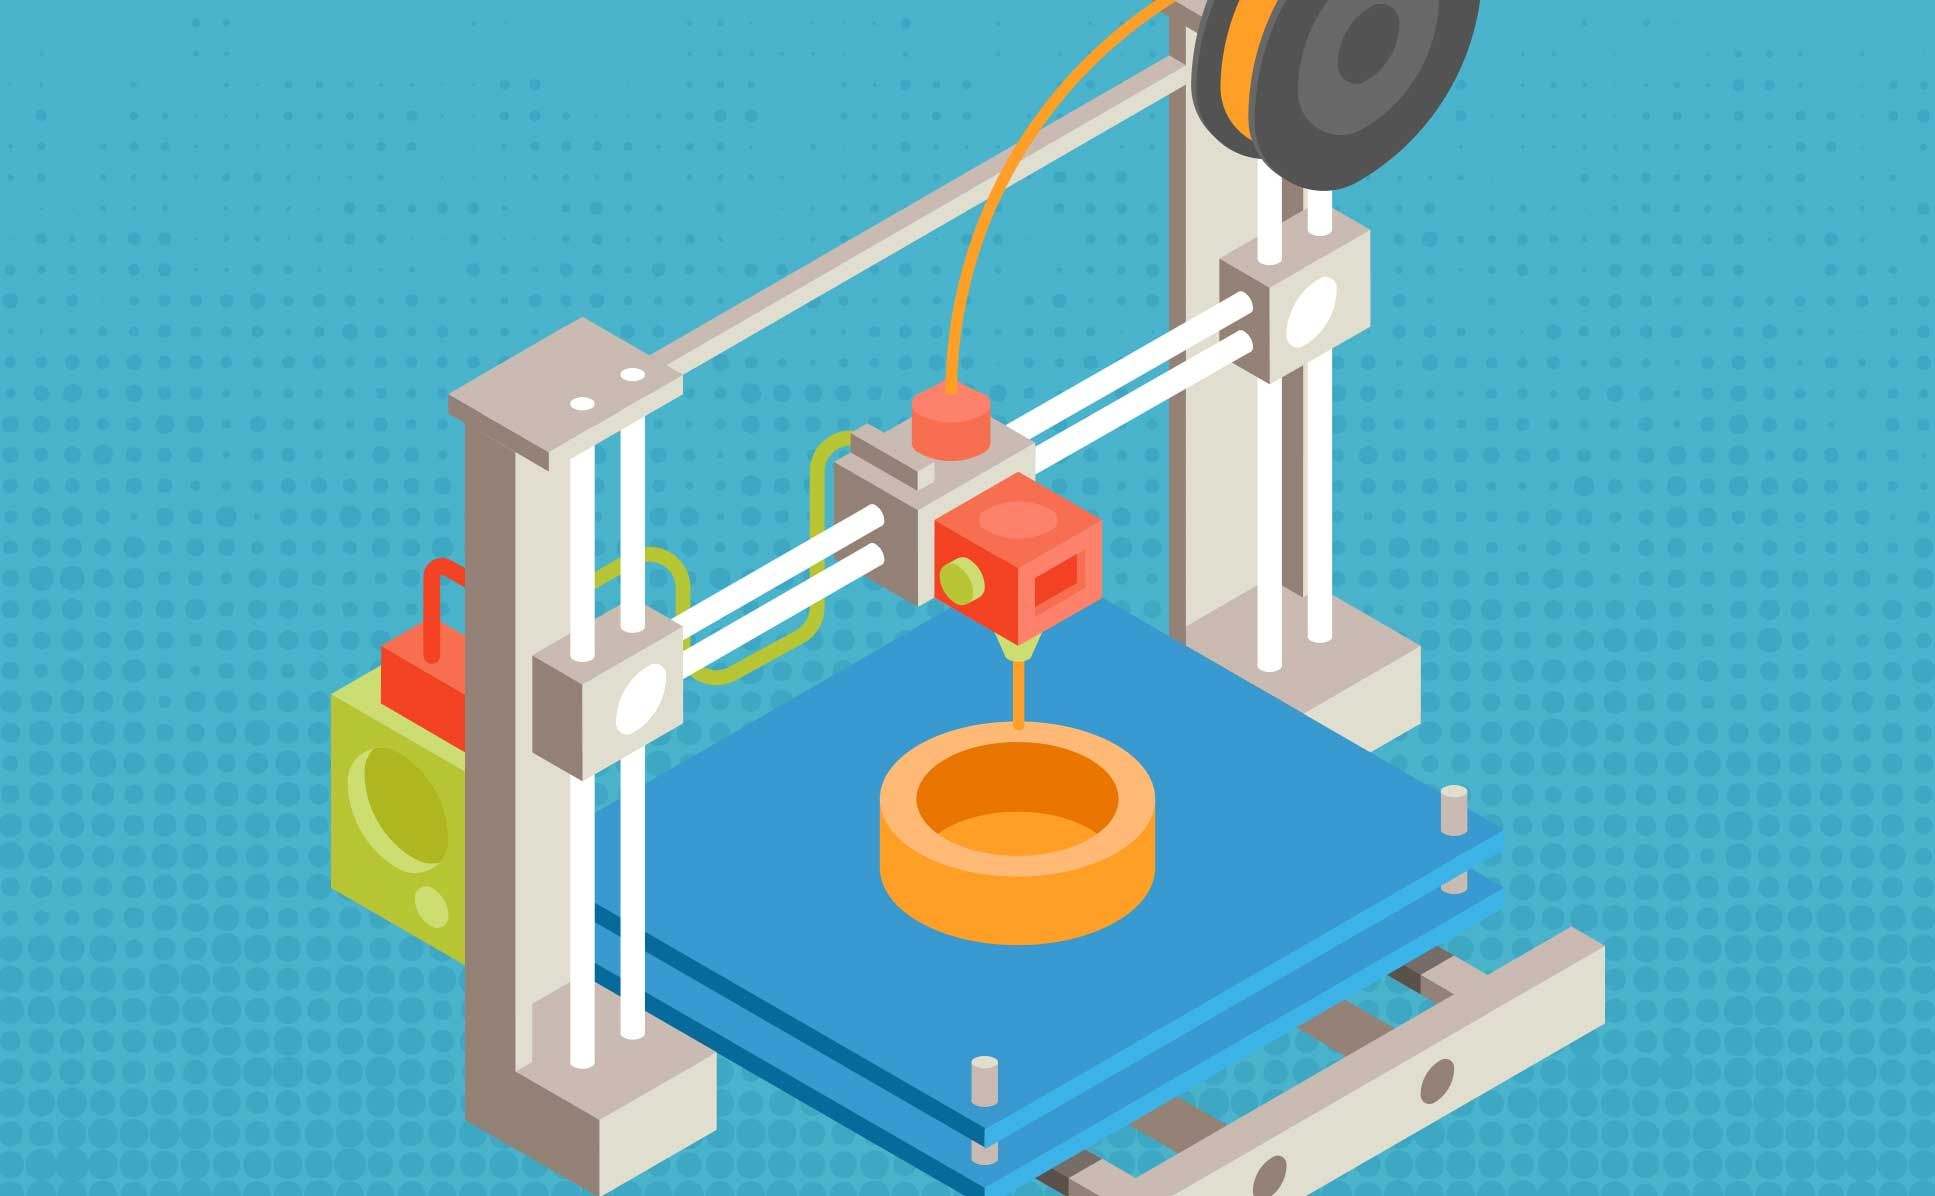 /the-world-of-3d-printing-alchemy-of-additive-manufacturing-rm4g3zml feature image